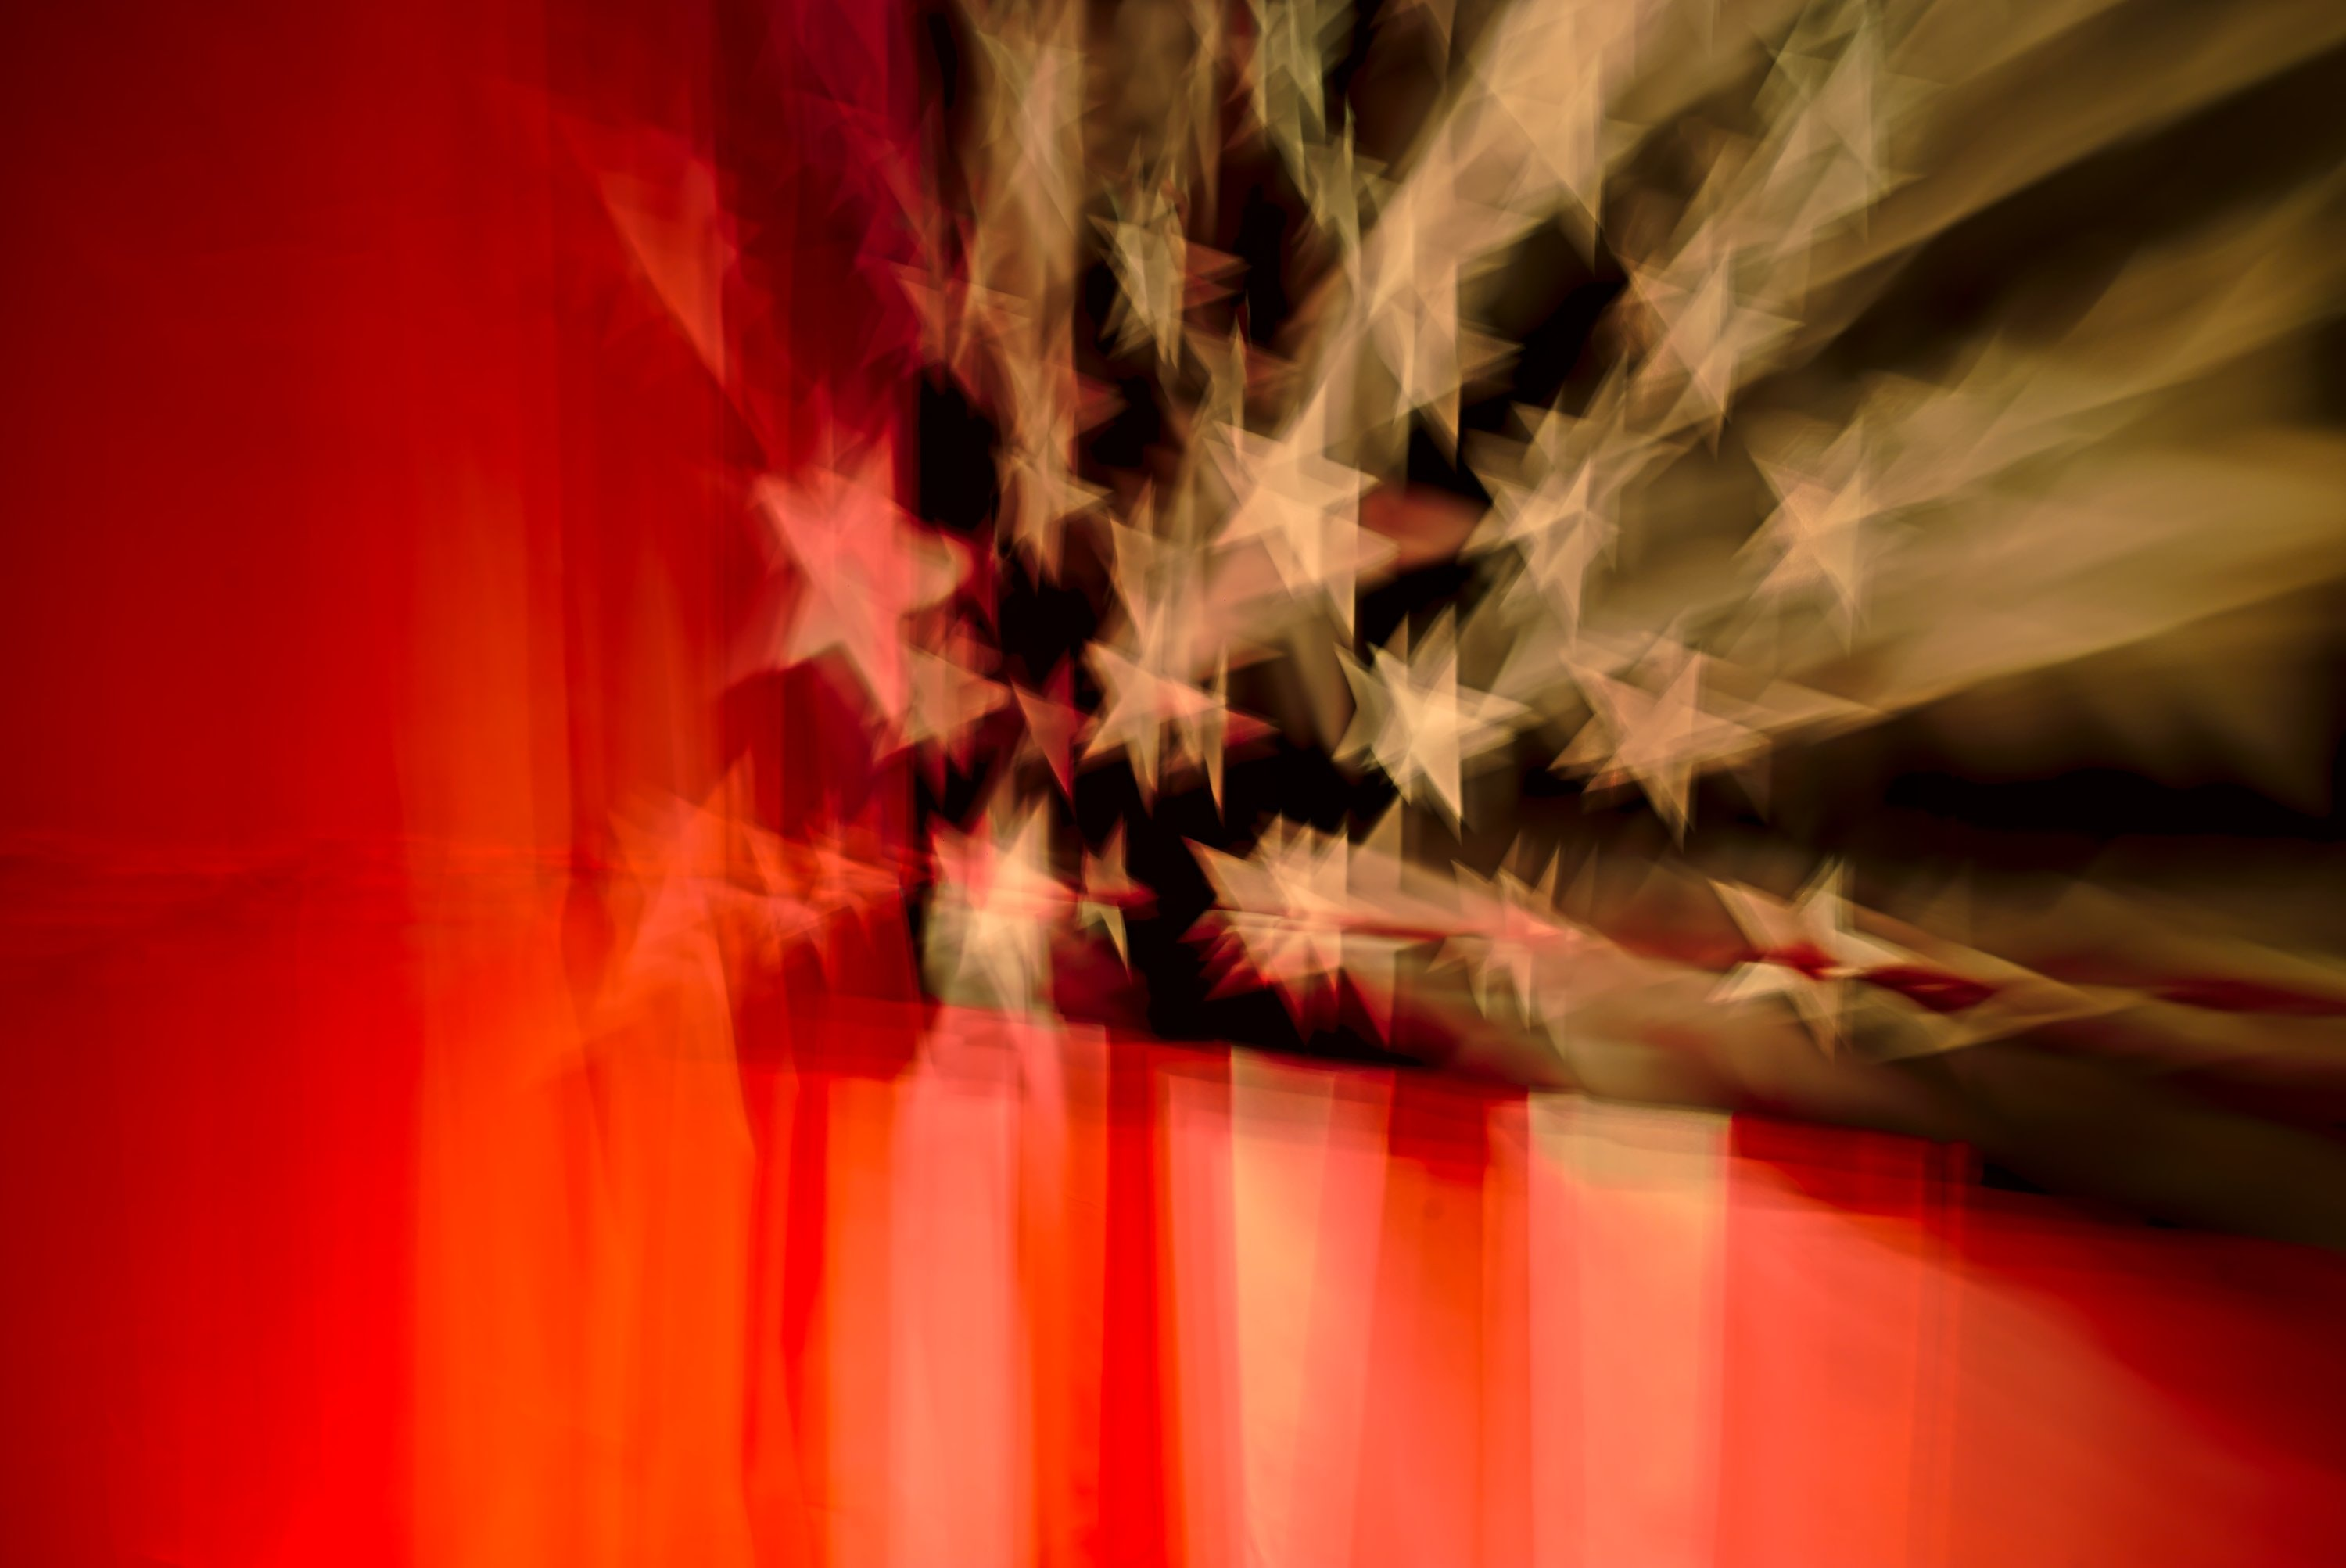 Blurry view of the stars and stripes on an American flag